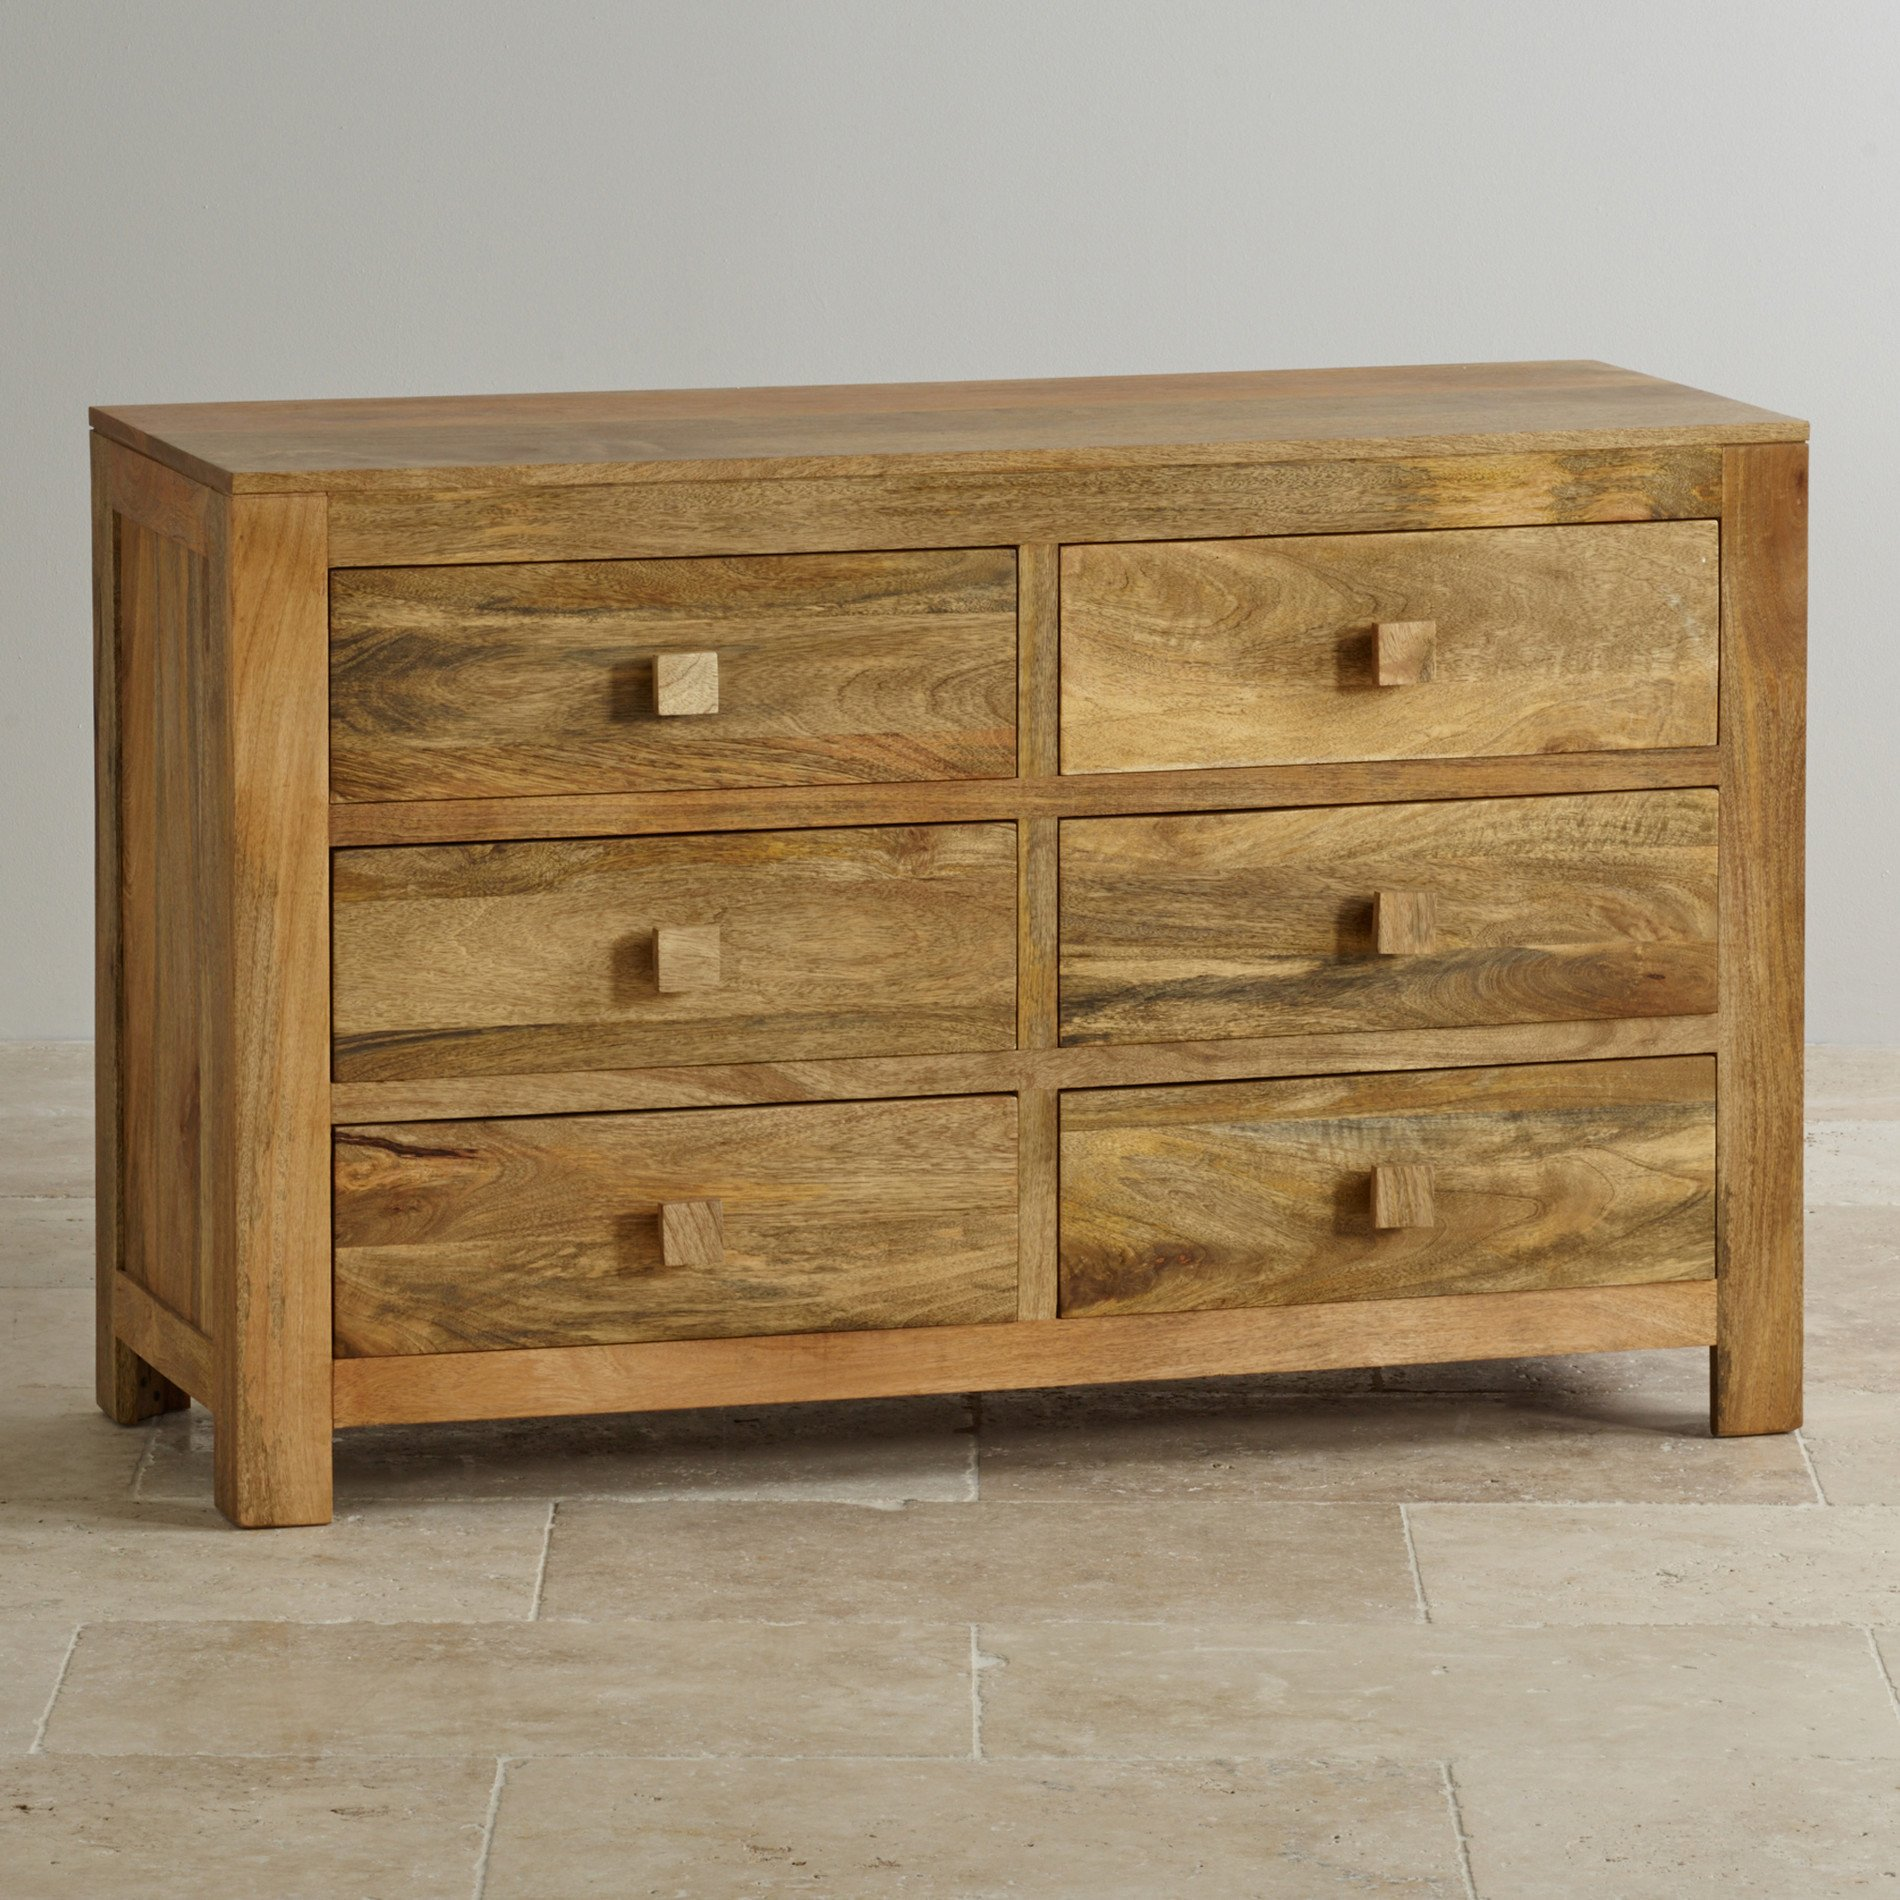 Mango Bedroom Furniture The Mantis Light Range Natural Solid Mango Wood Furniture